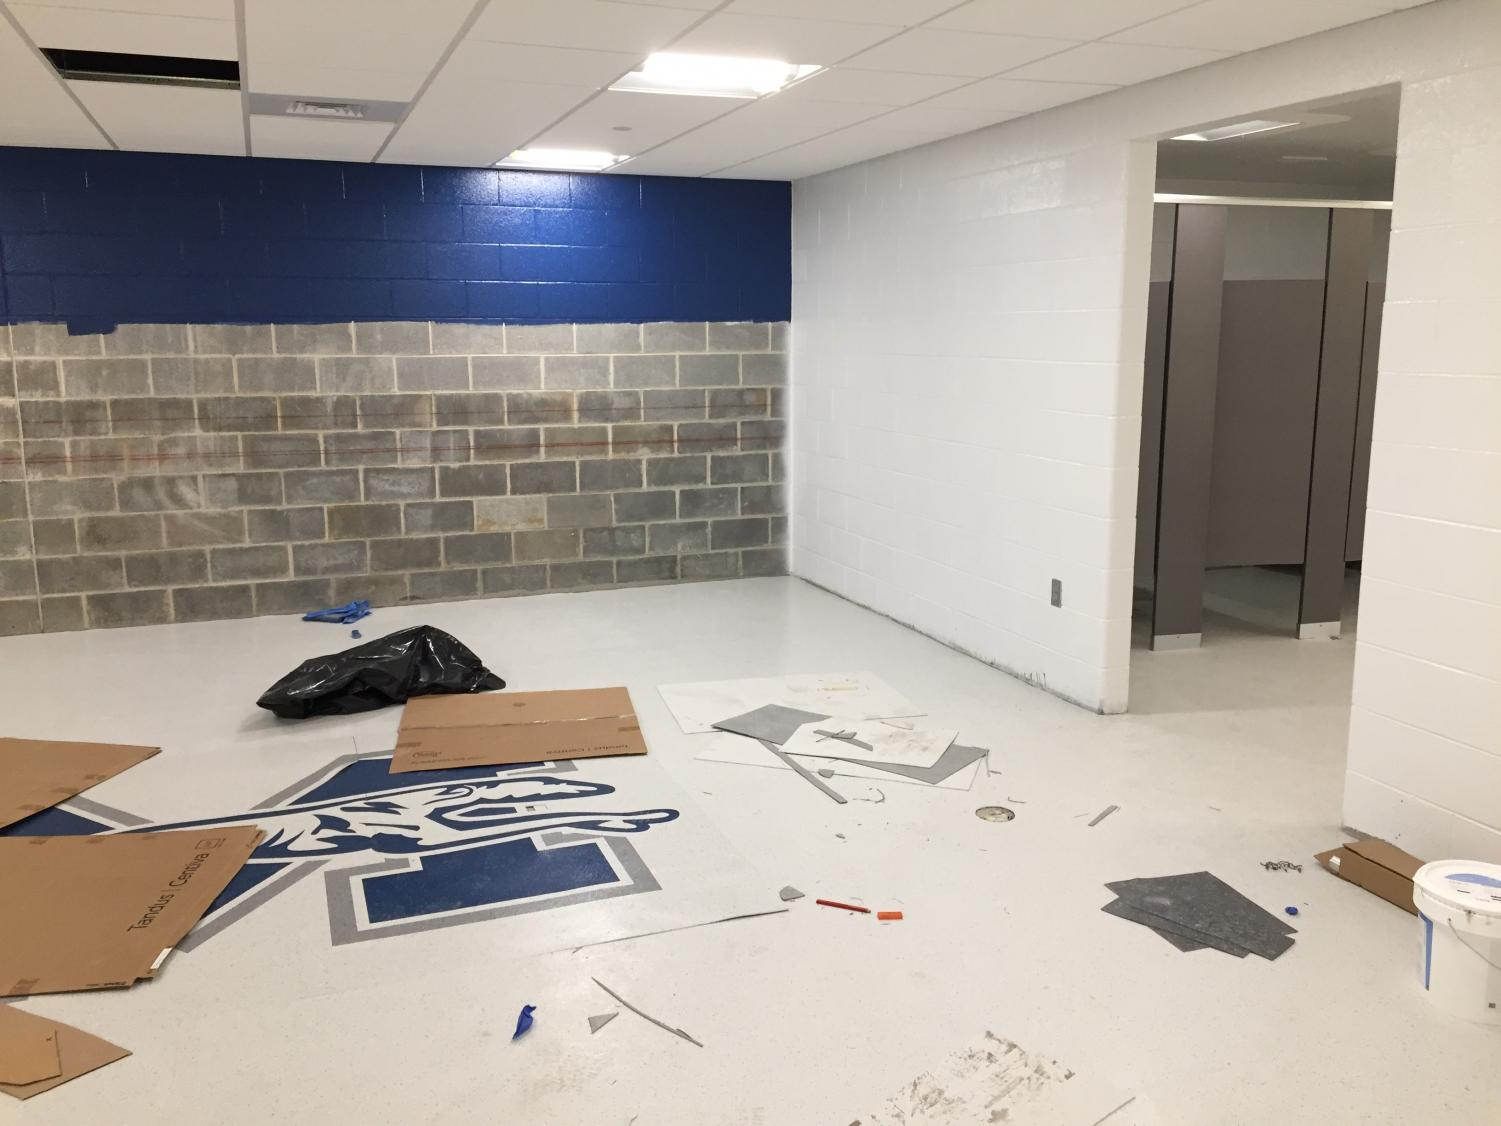 The current inside of the new locker room area, which is in progress.